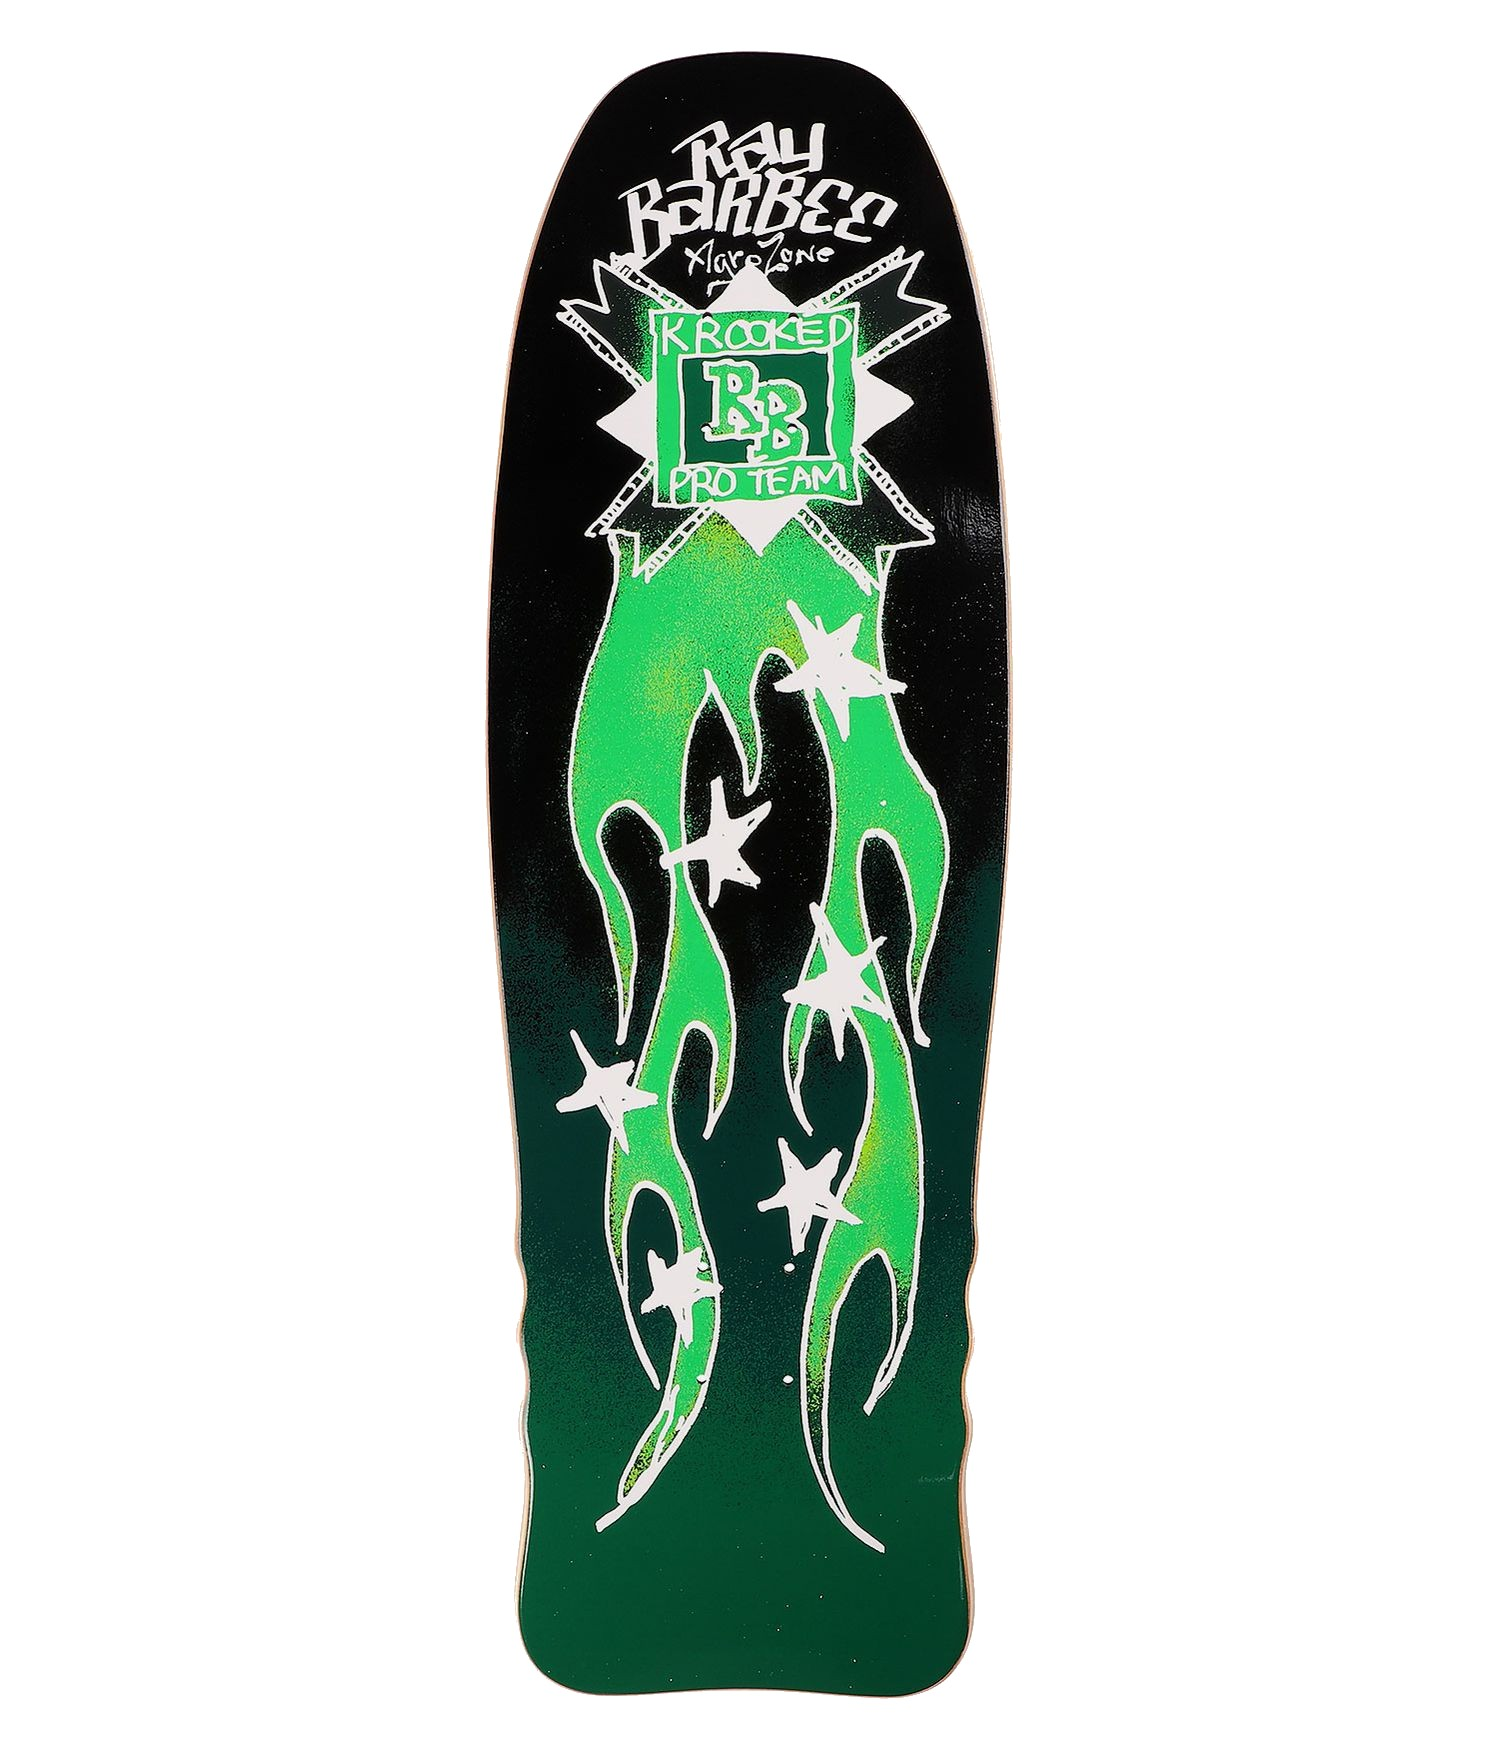 """KROOKED RAY BARBEE FLAMES 10.0"""" SKATEBOARD DECK"""